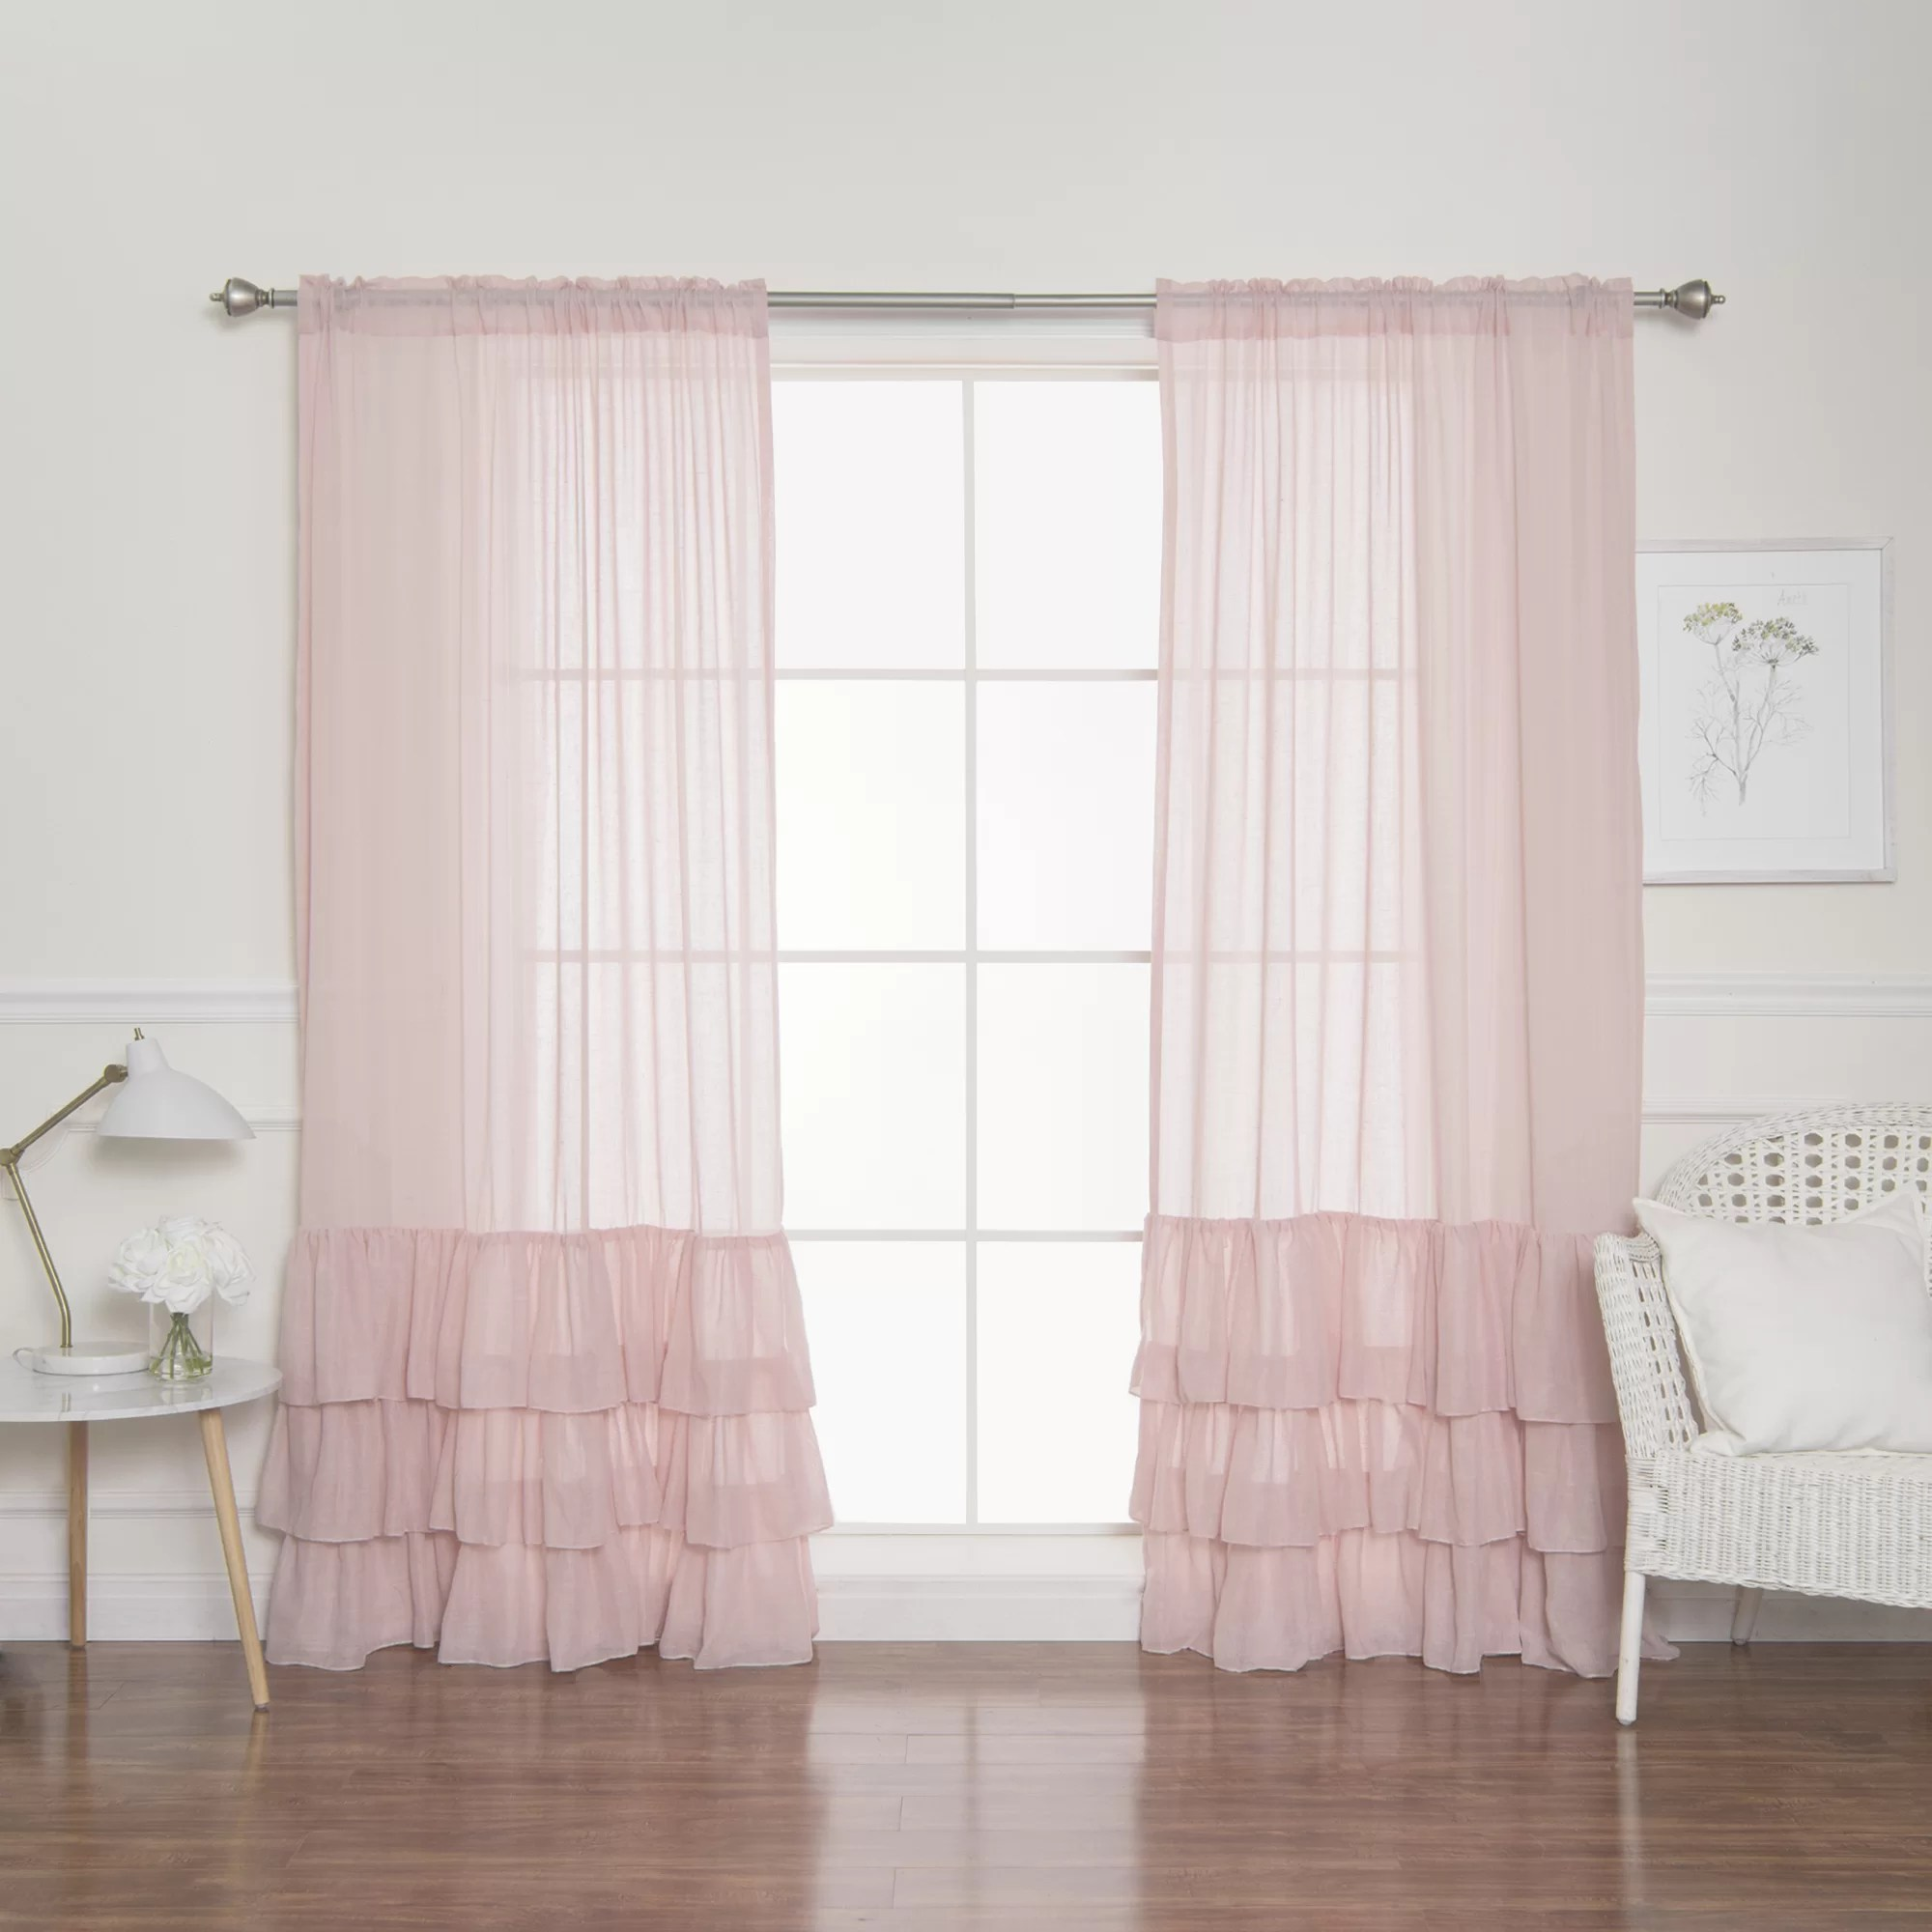 Ruffle Curtain Panel Neuville Ruffle Solid Semi Sheer Rod Pocket Curtain Panels